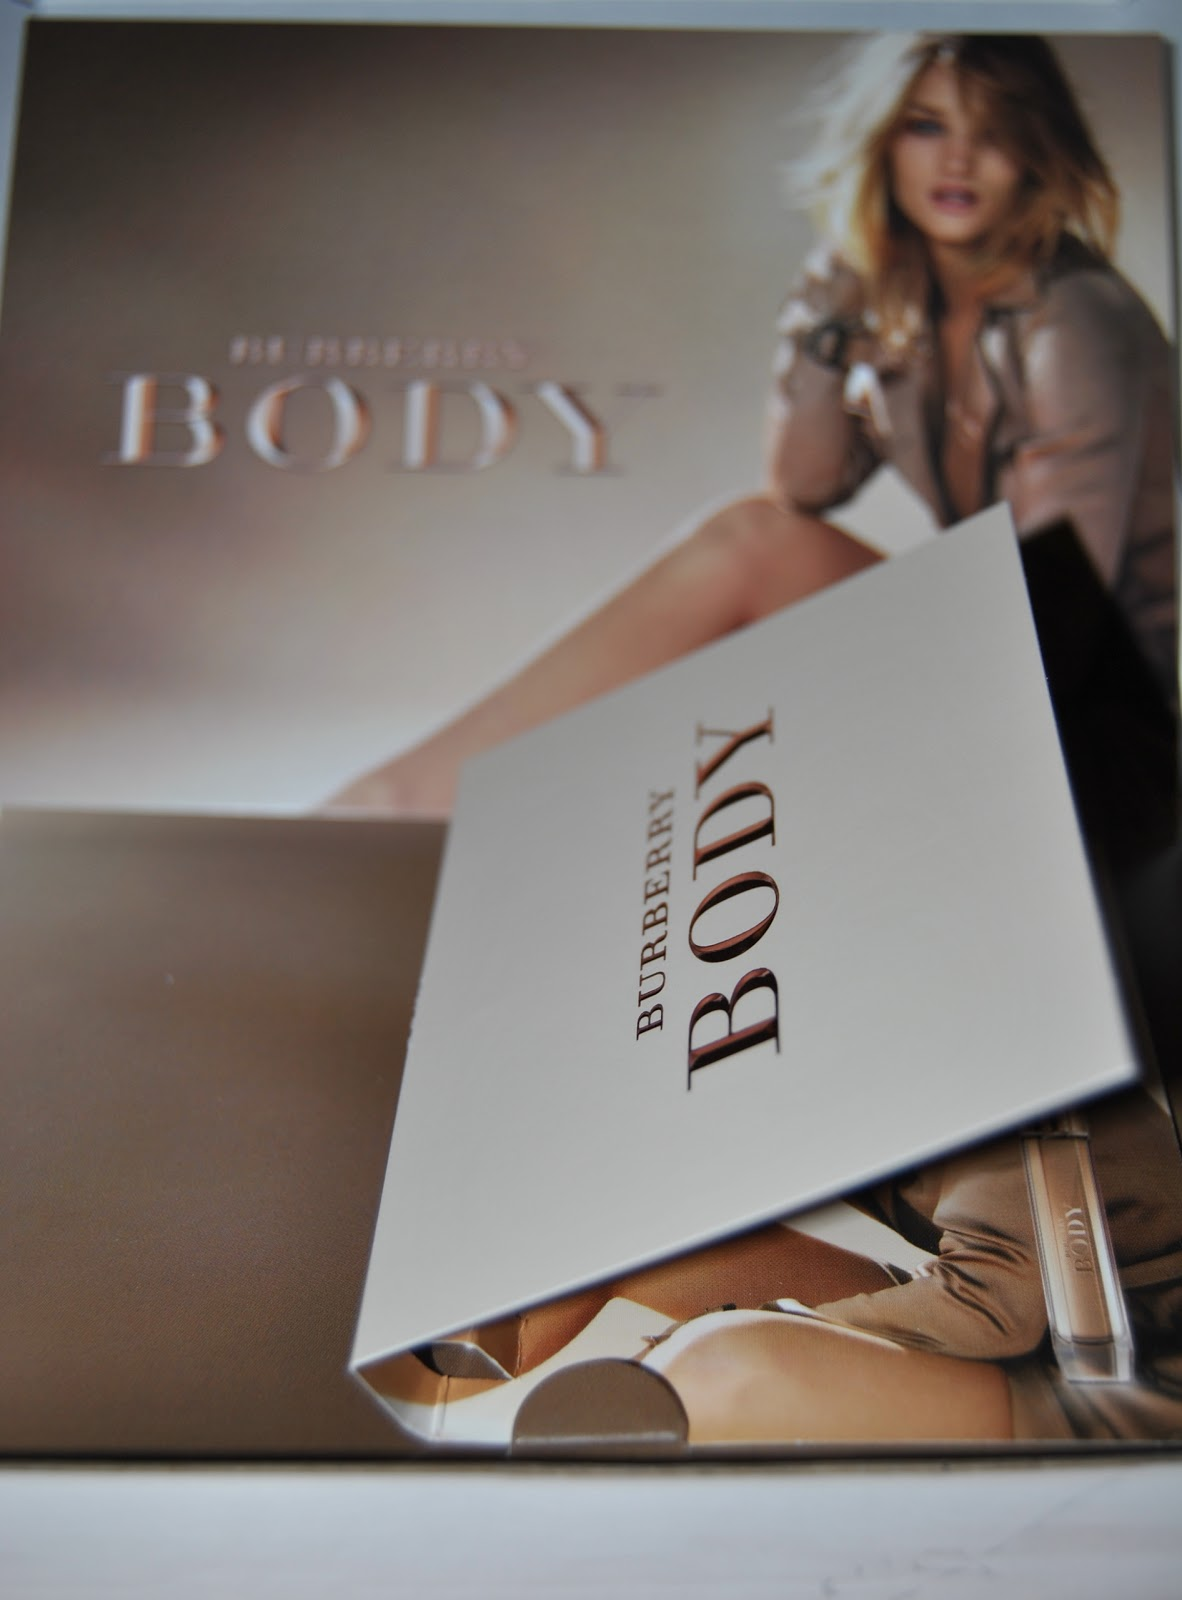 Burberry Body perfume sample